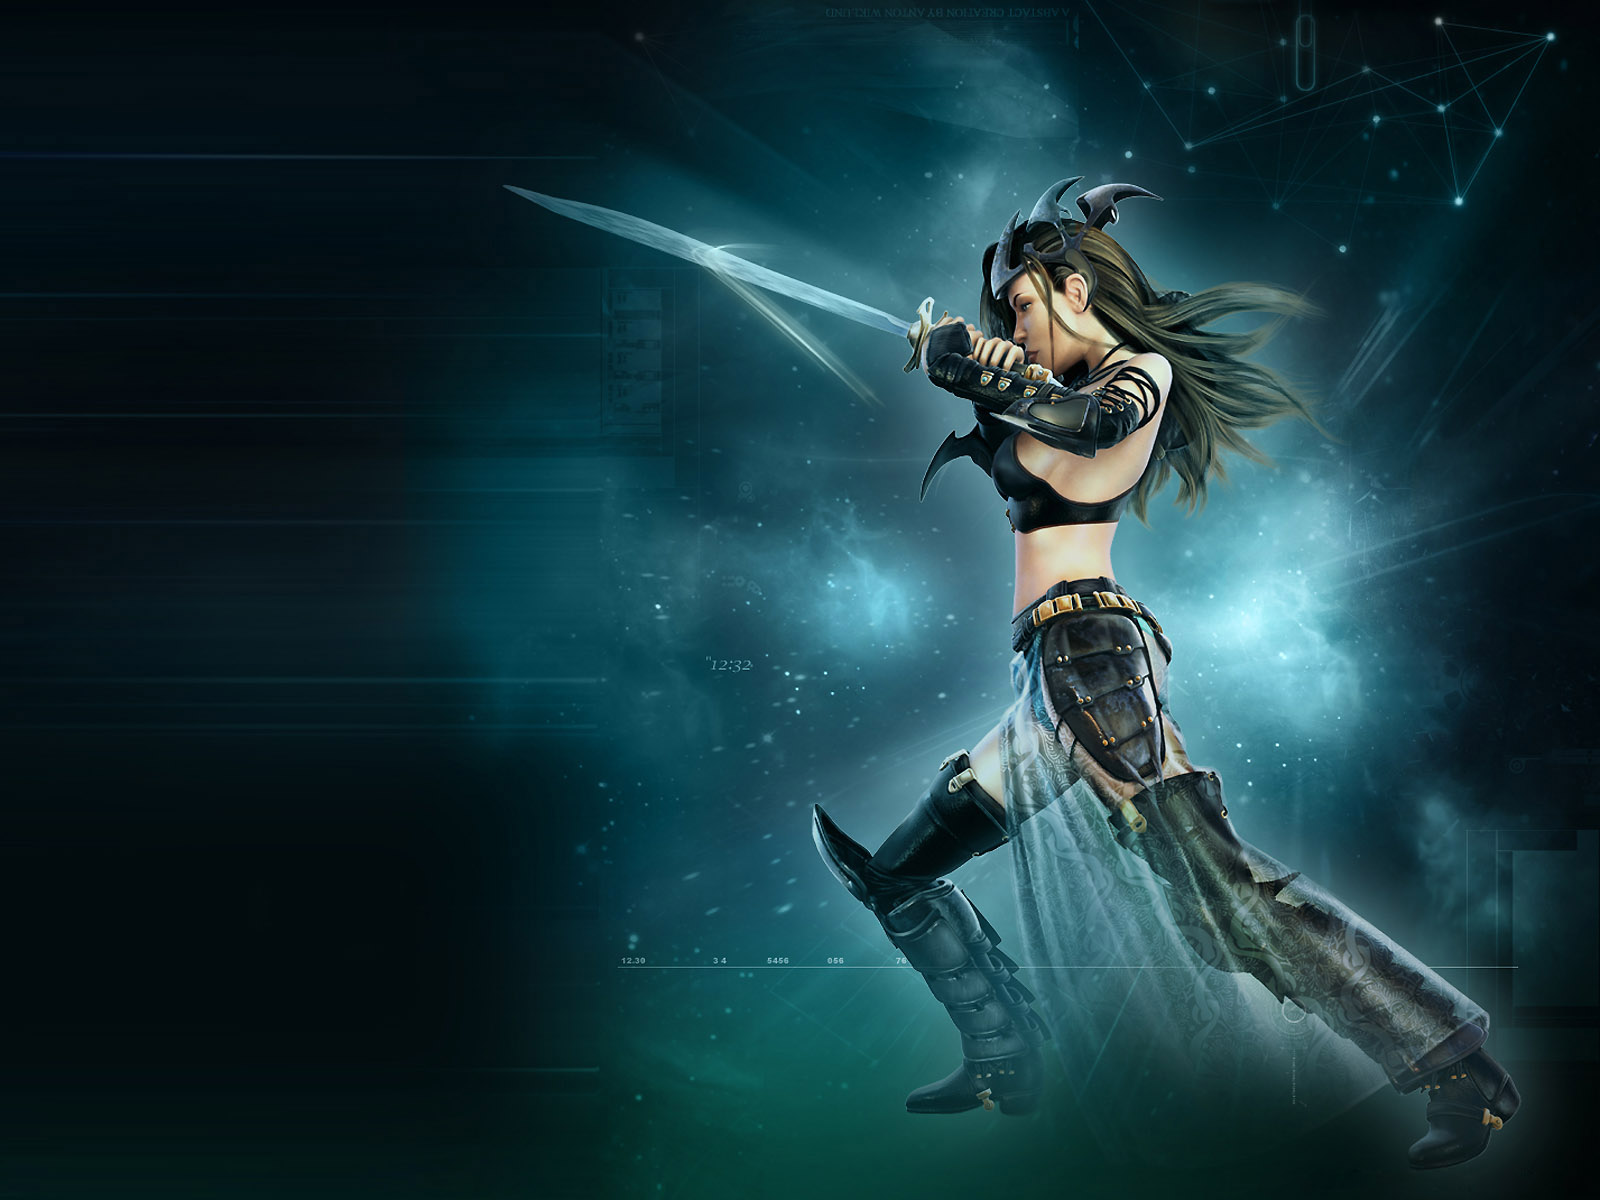 Hot 3d fantasy girls high resolution wallpaper 02 - 3d fantasy wallpaper ...